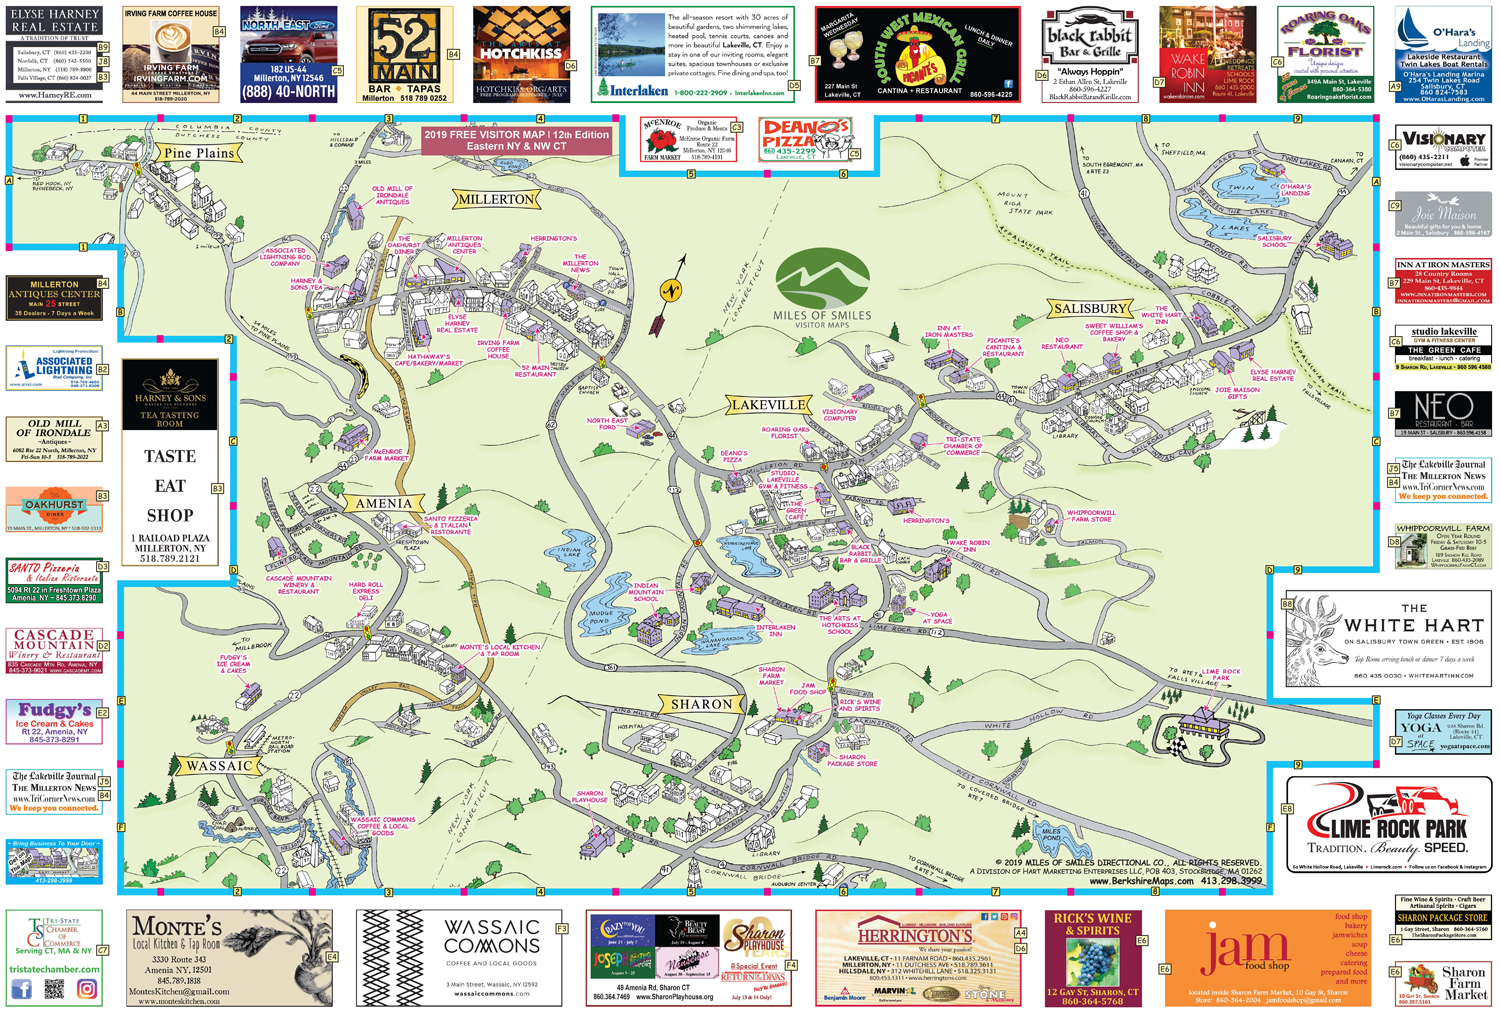 Berkshire Maps - Millerton, Salisbury & towns nearby